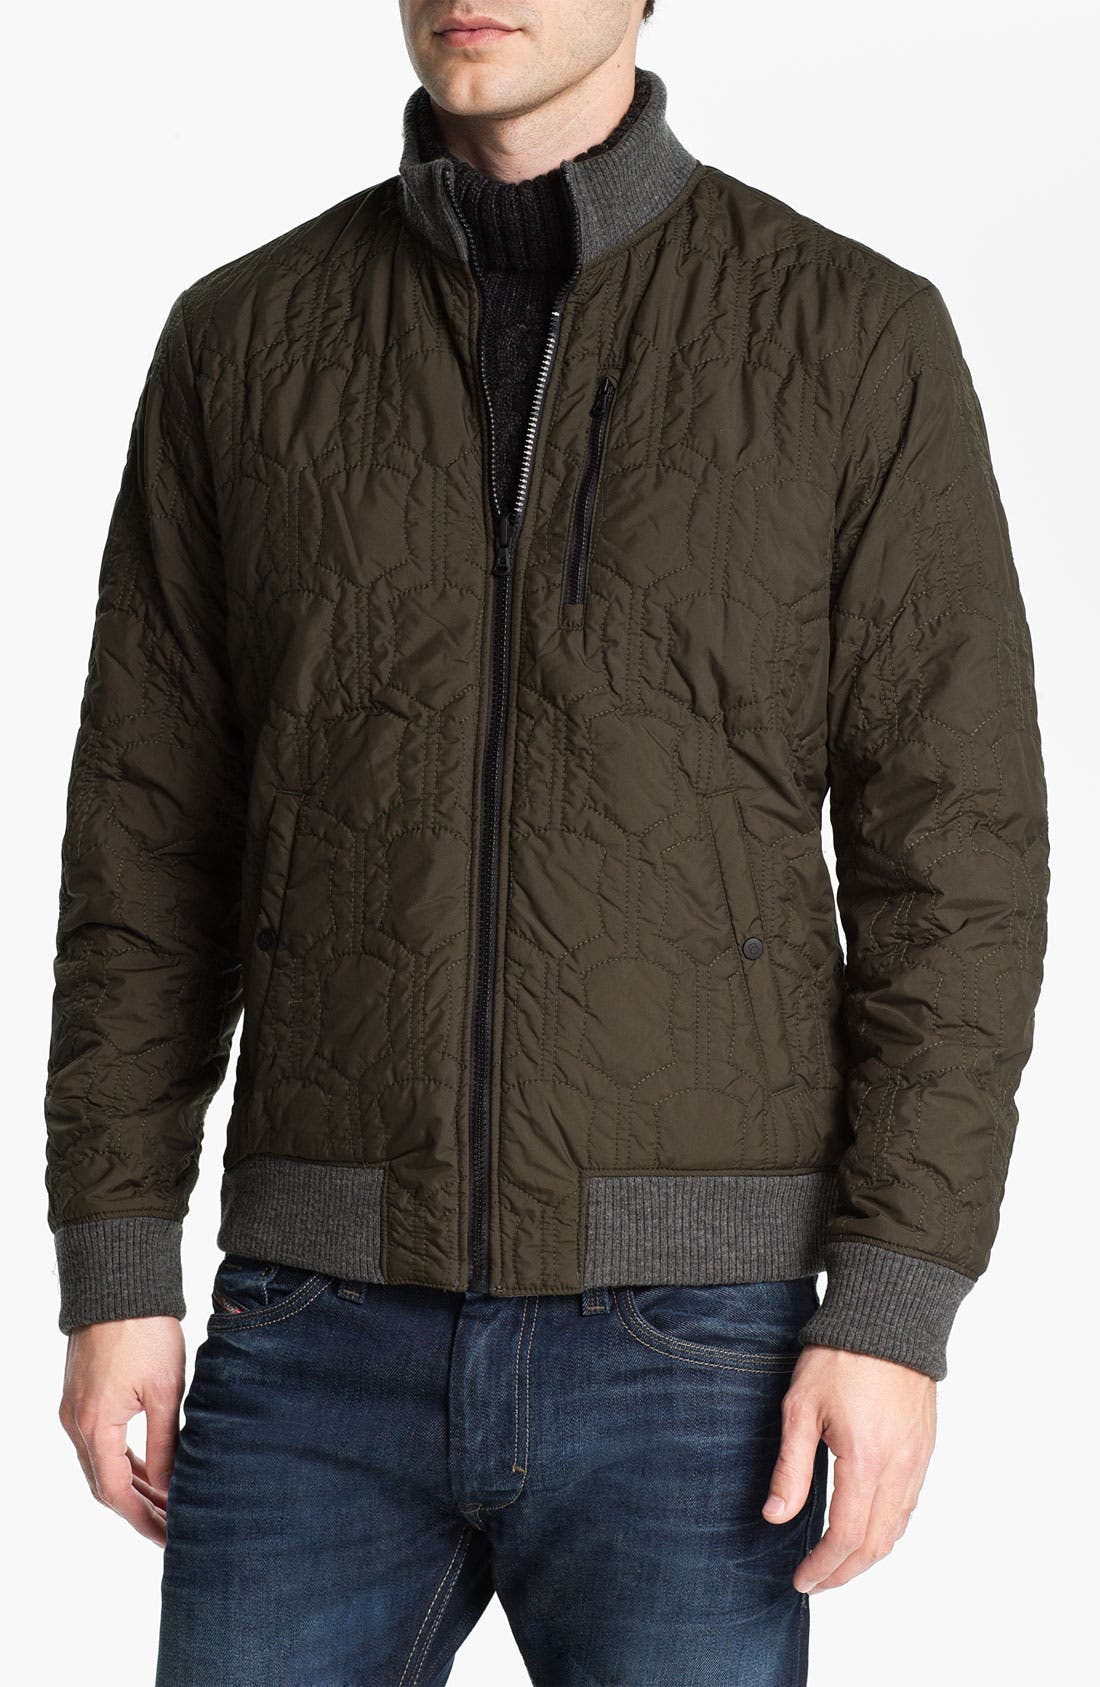 Alternate Image 1 Selected - Victorinox Swiss Army® Insulated Reversible Liner Jacket (Online Exclusive)